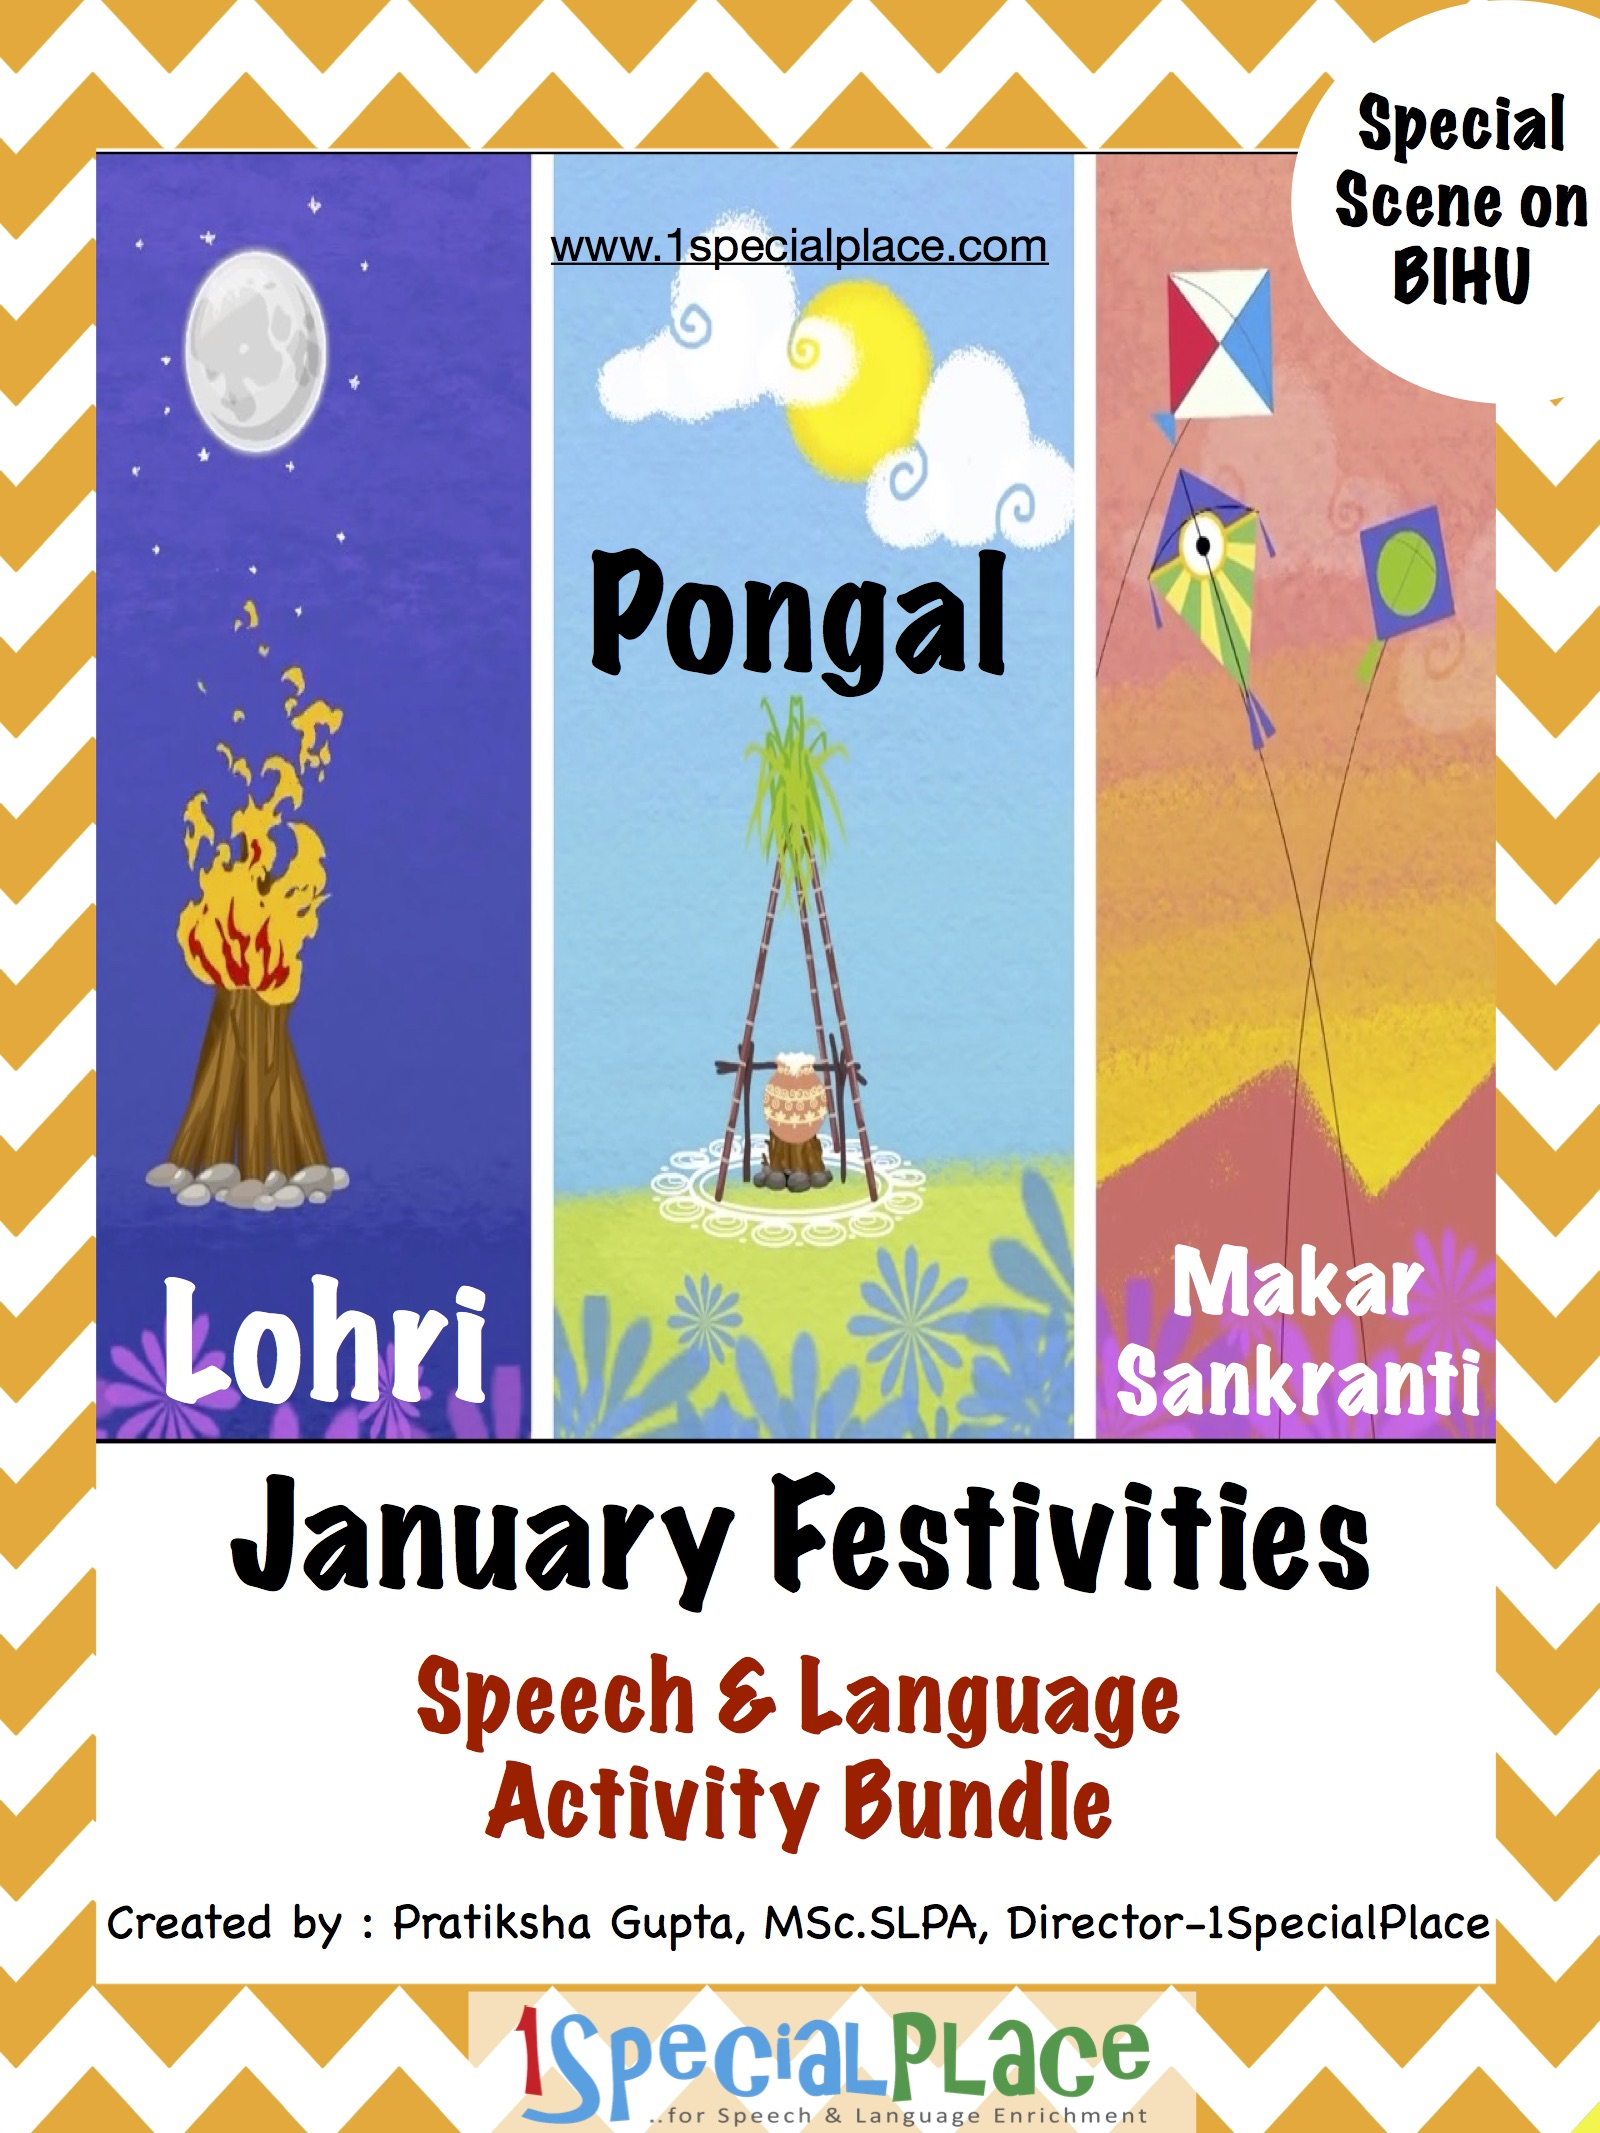 Januray Festivities - Speech & Language Bundle